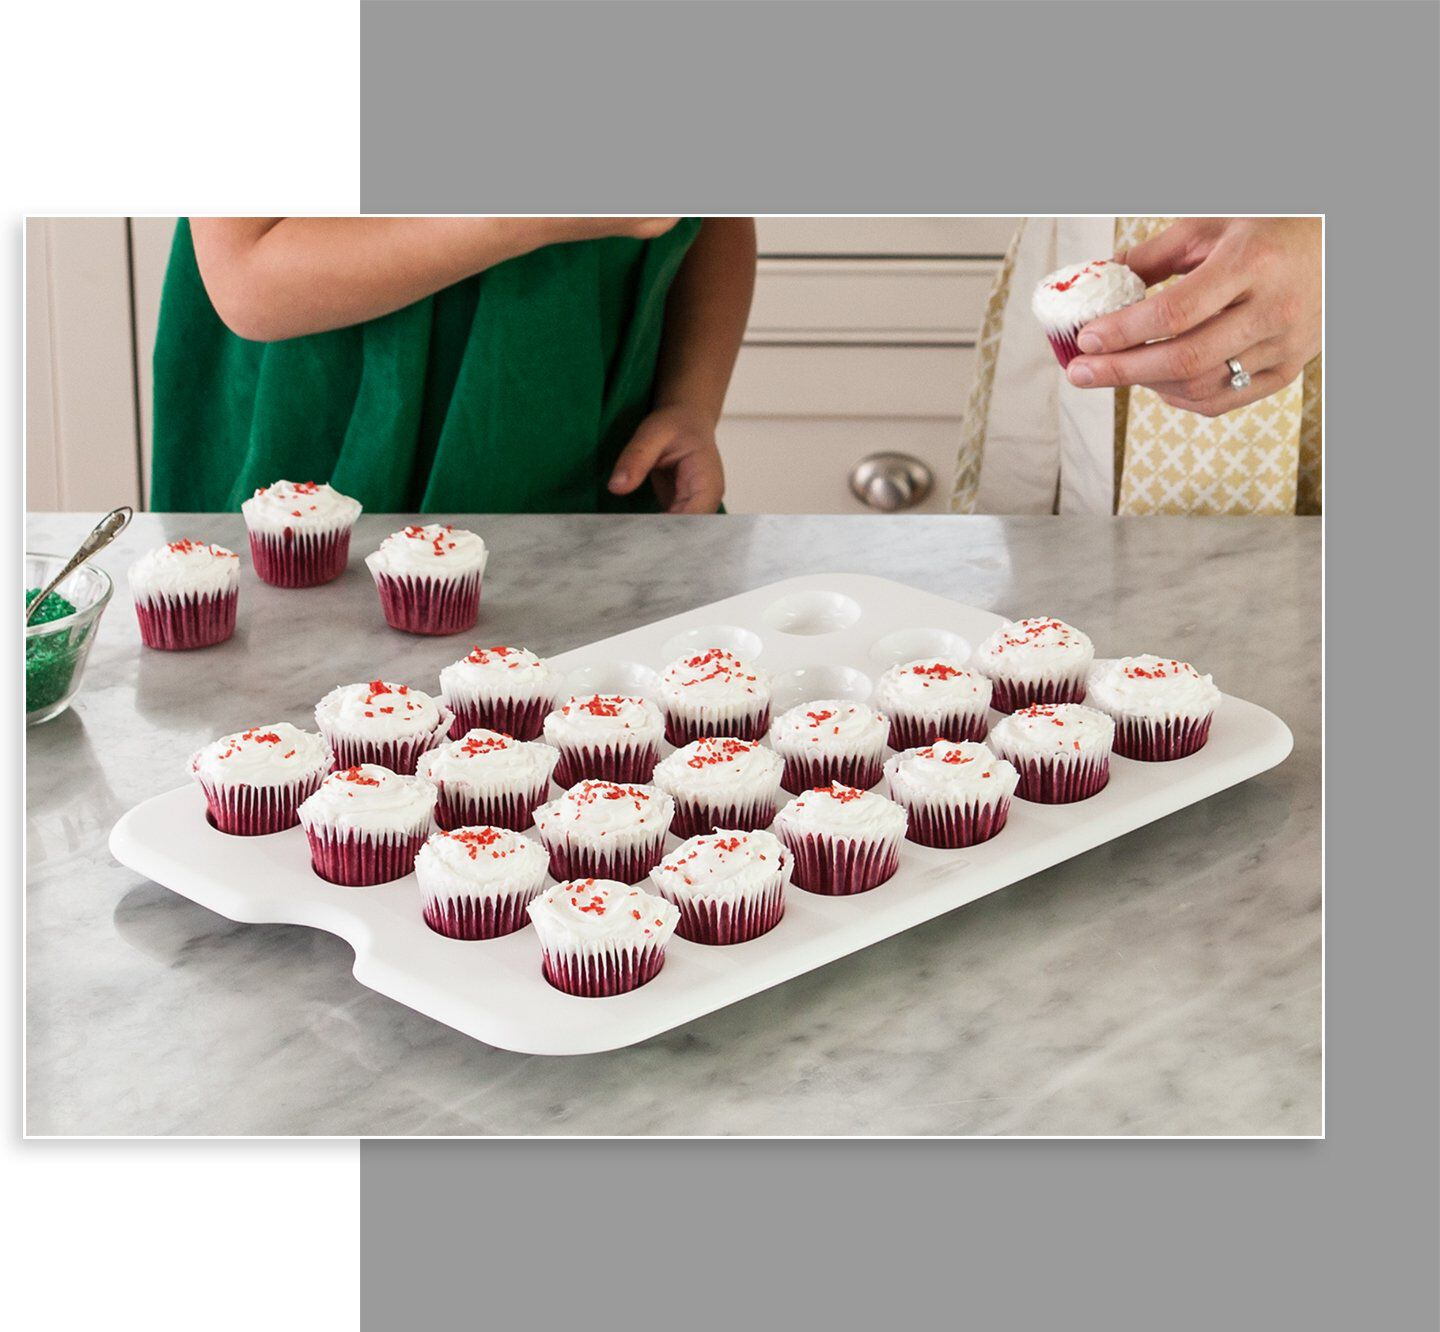 Rubbermaid cupcake tray serveware party